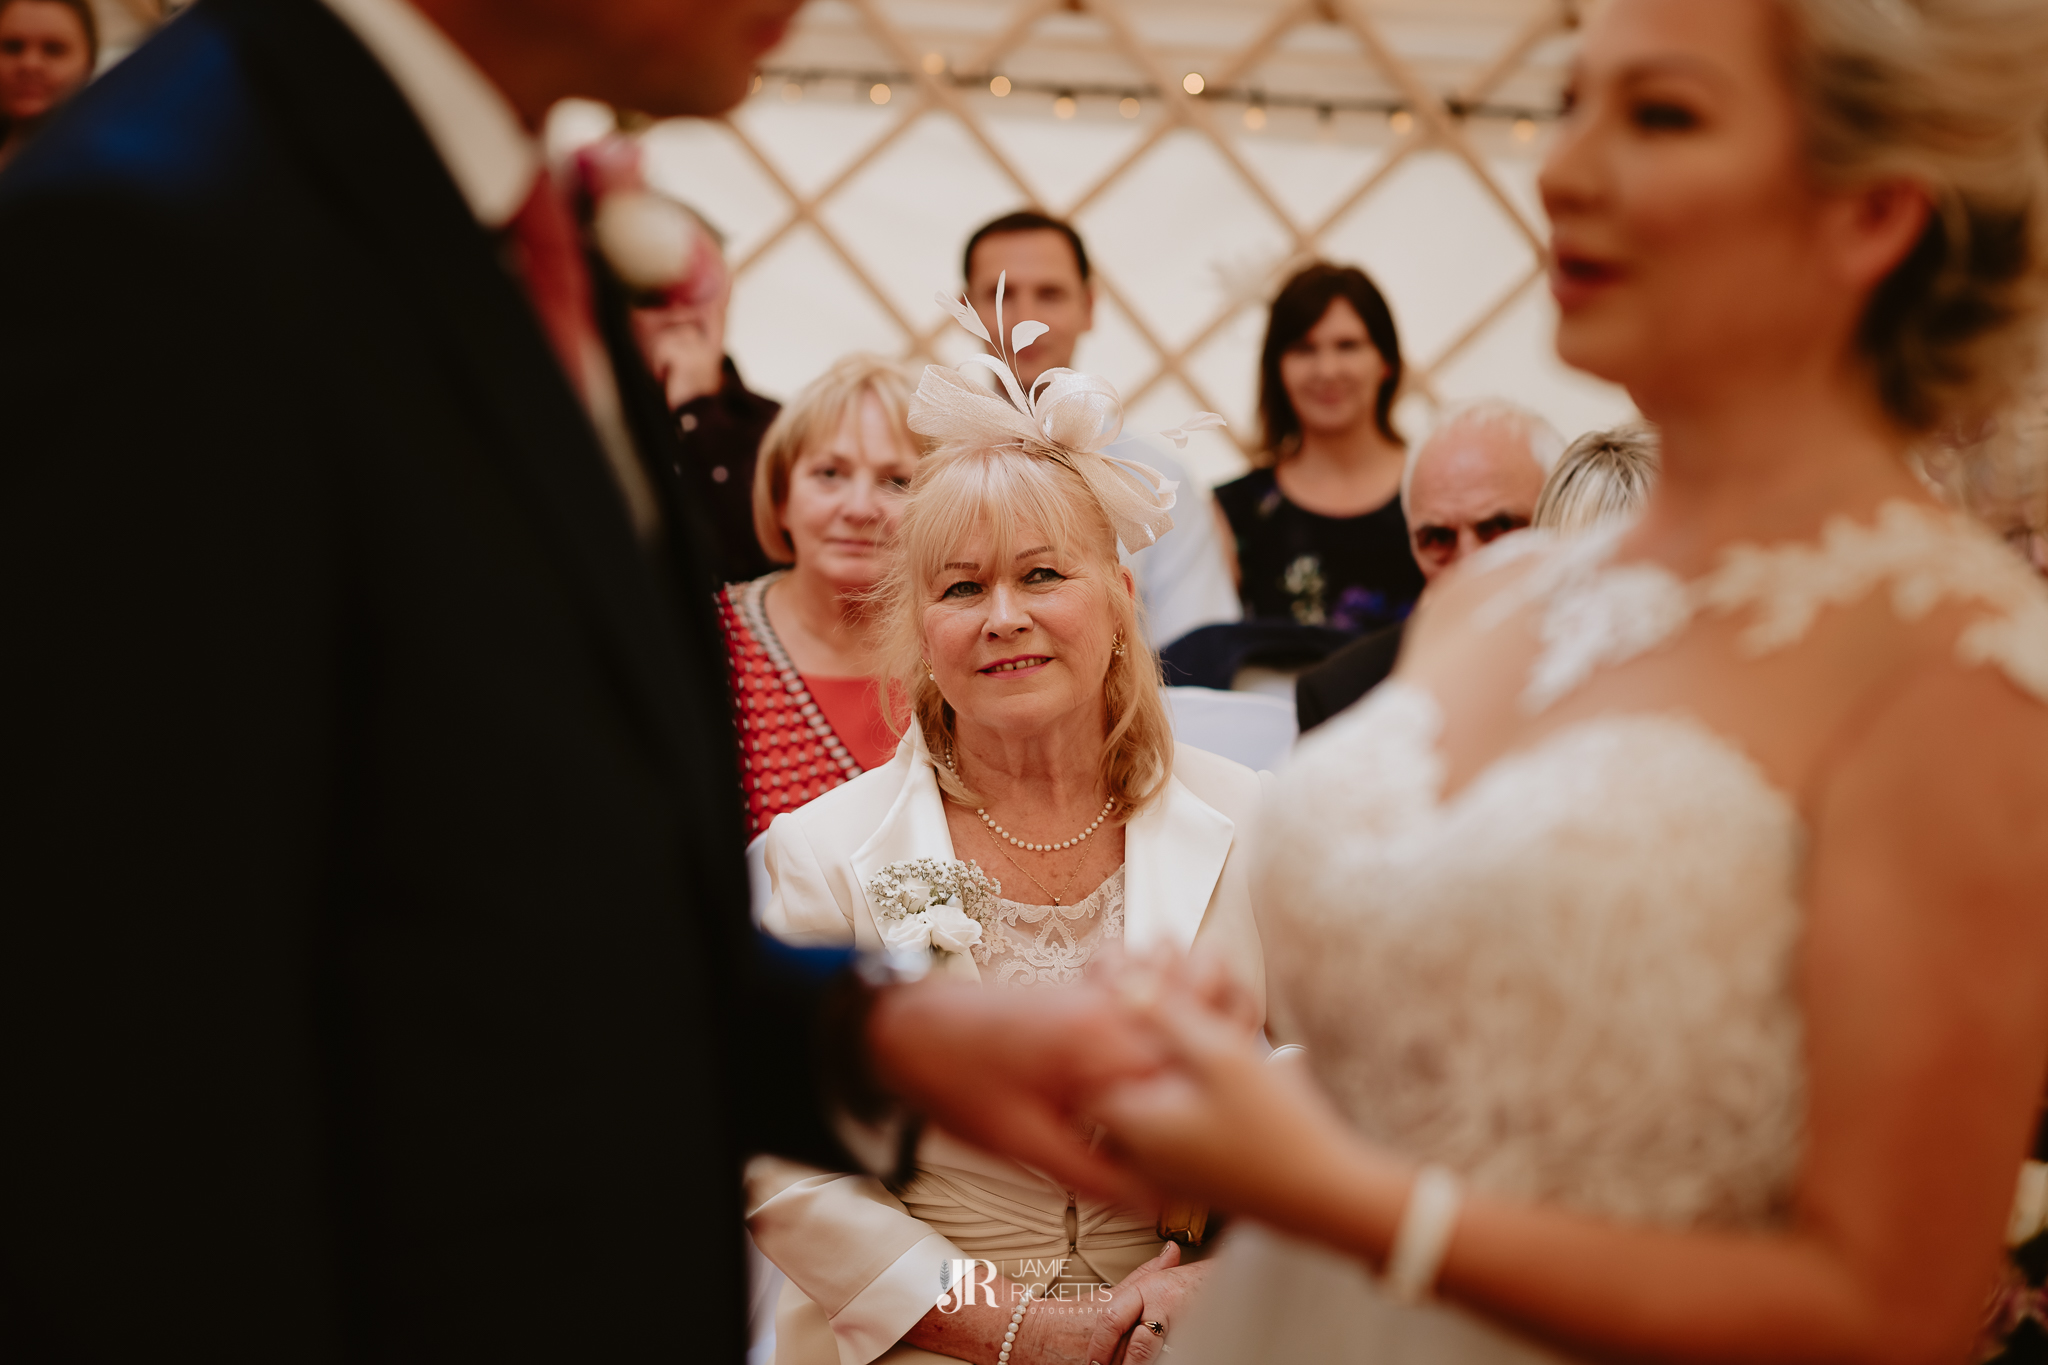 Wroxeter-Hotel-Wedding-Photography-In-Shropshire-By-Shropshire-Wedding-Photographer-Jamie-Ricketts-065.JPG